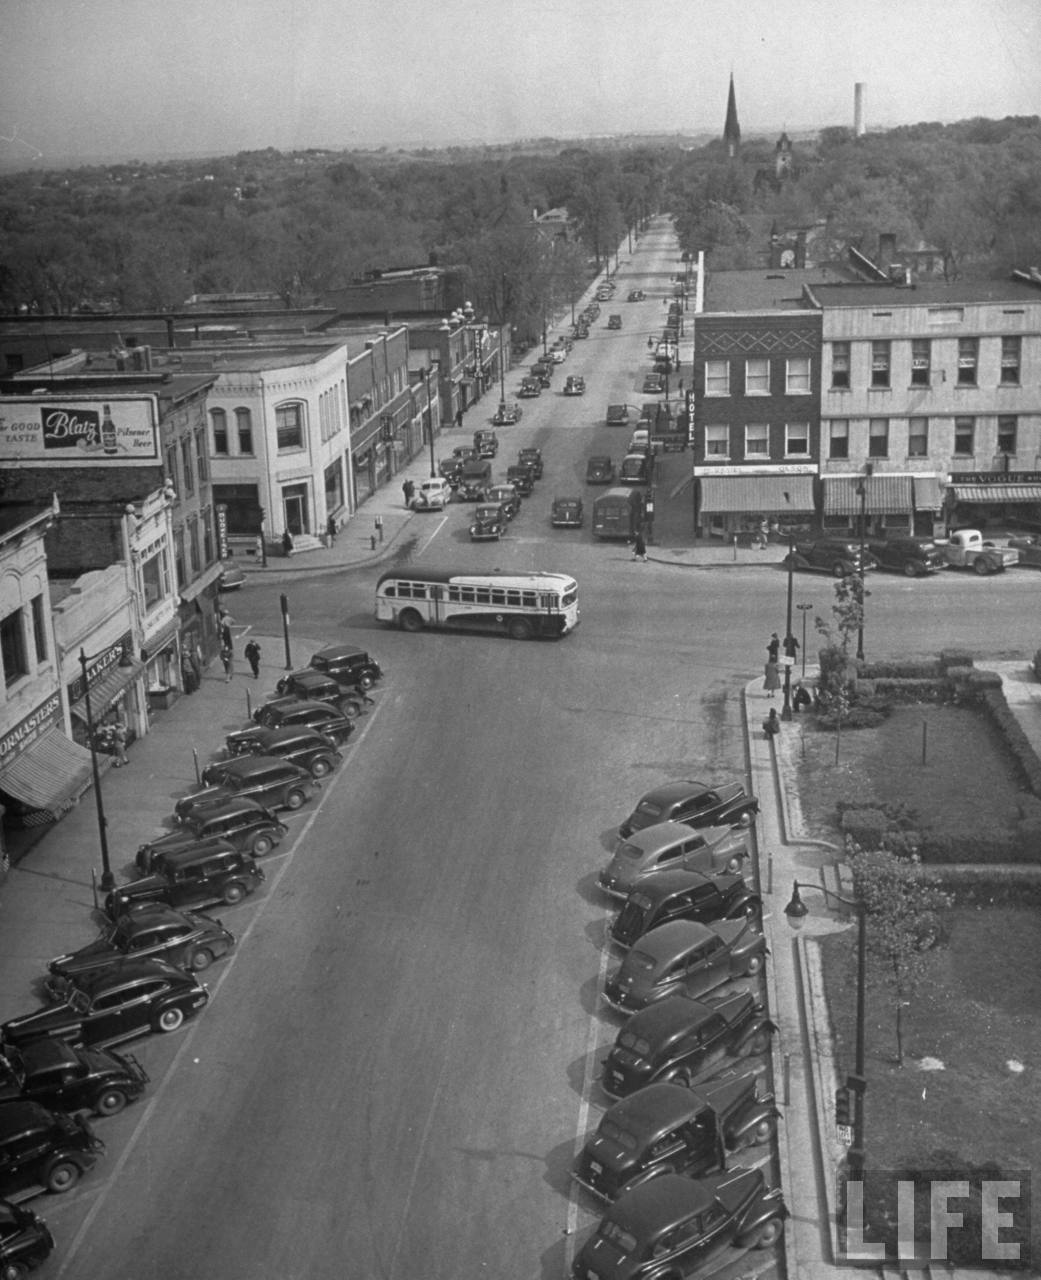 Street scene (from photo essay re Harry Truman's Missouri).